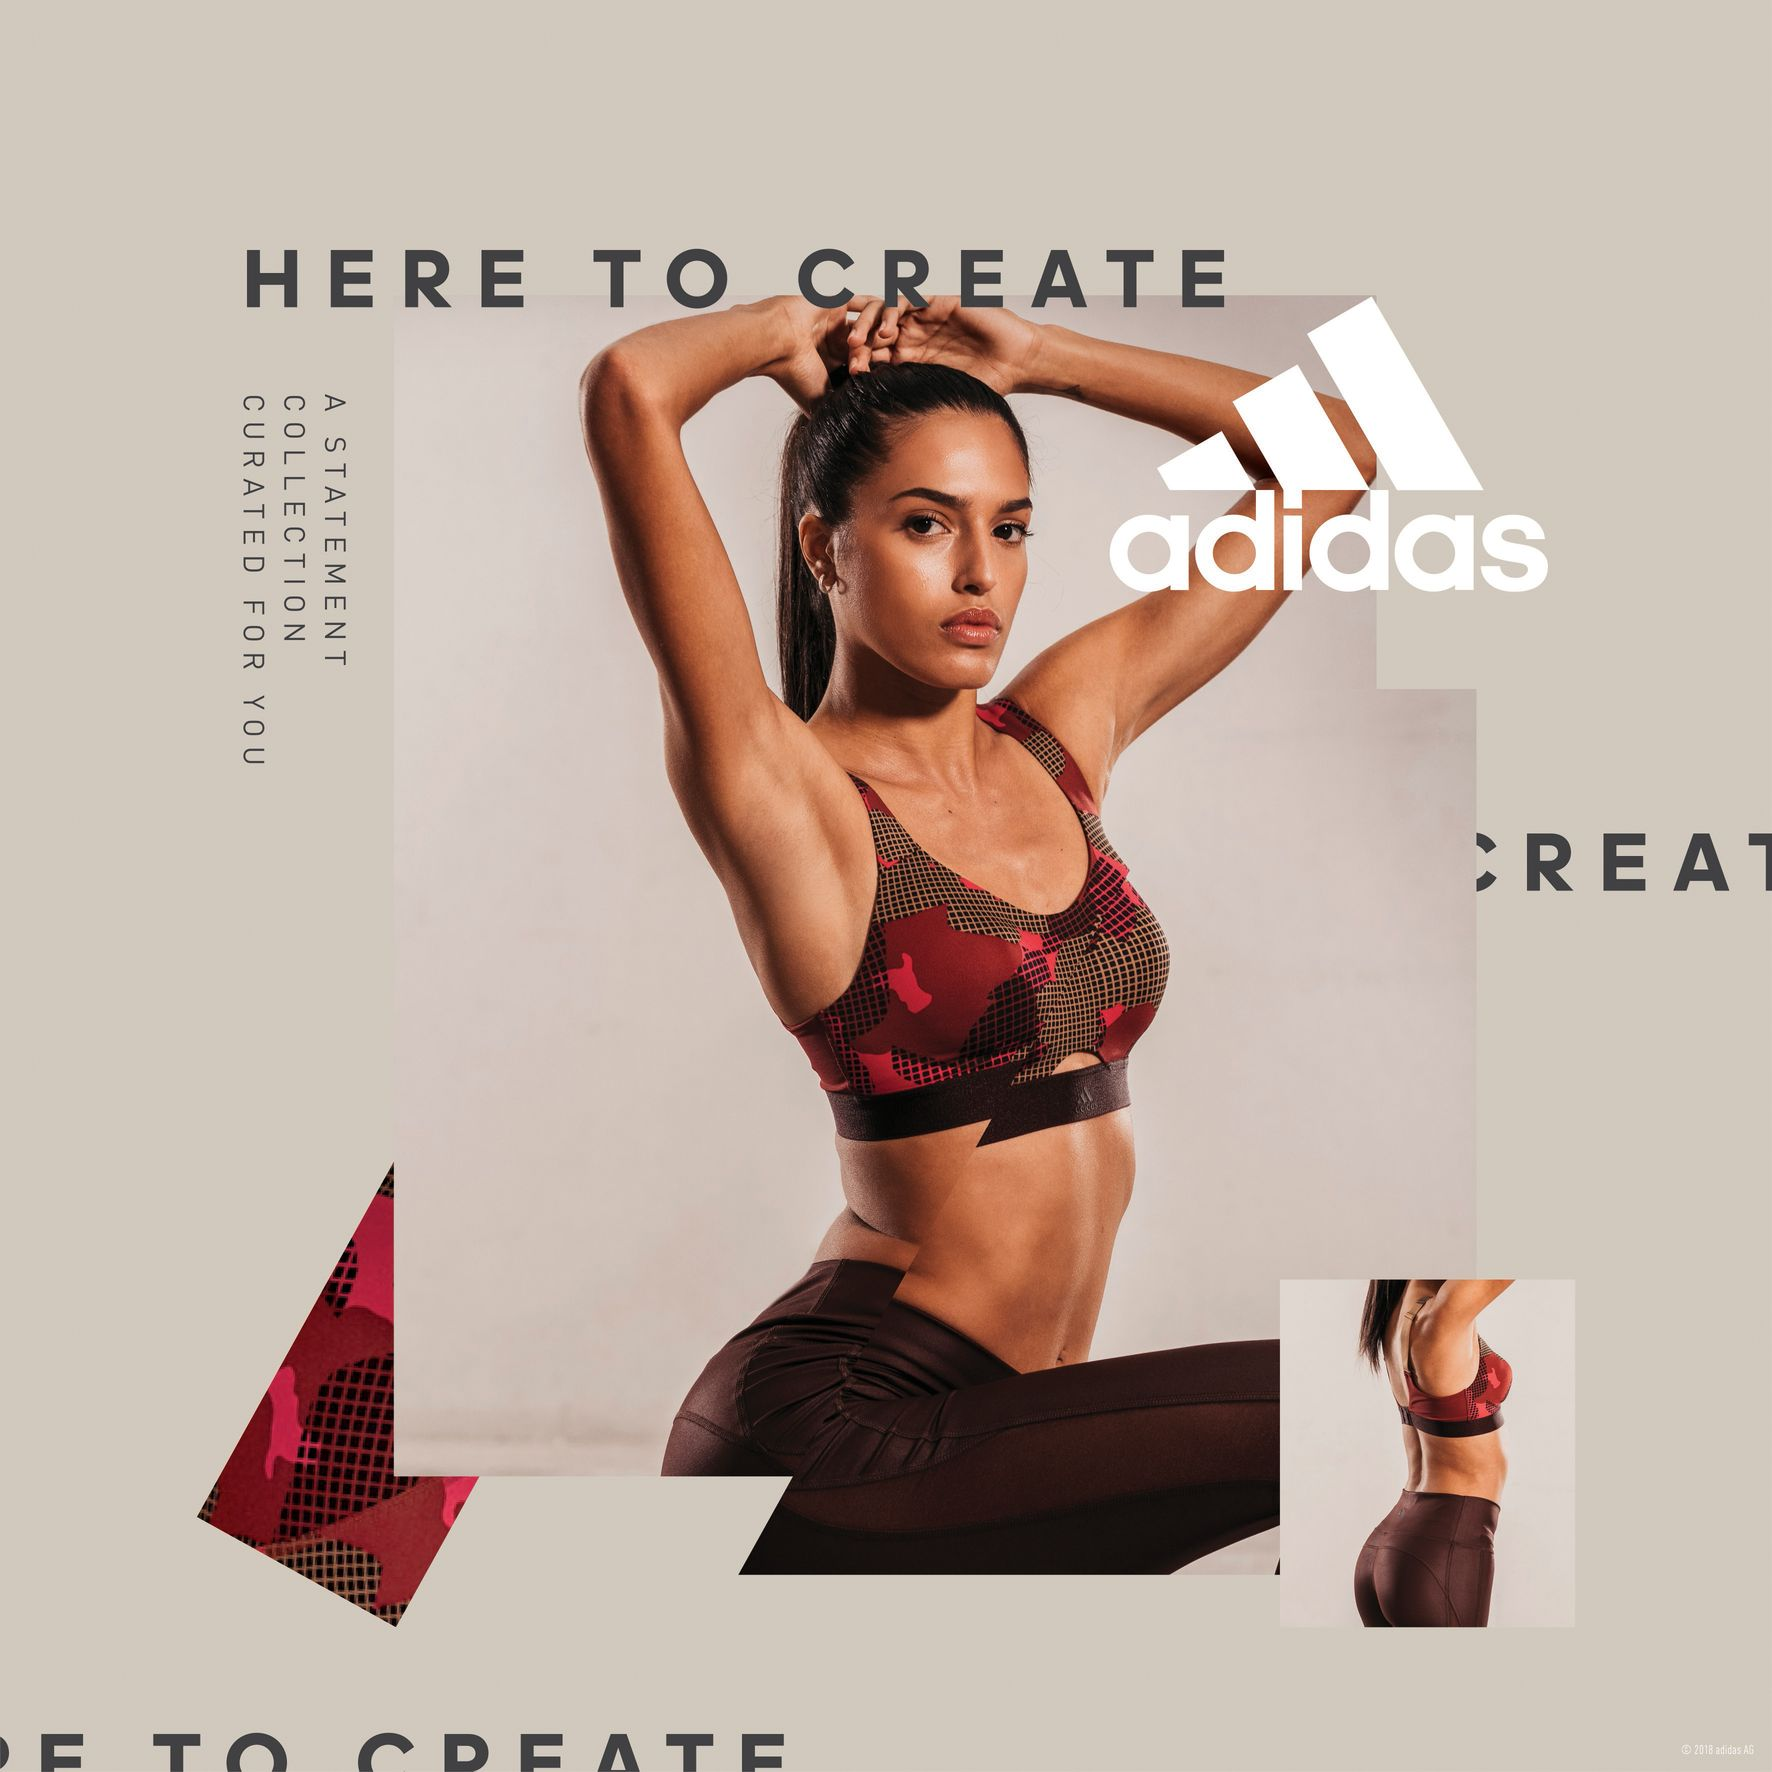 Adidas Women Statement Collection - Athina Koini